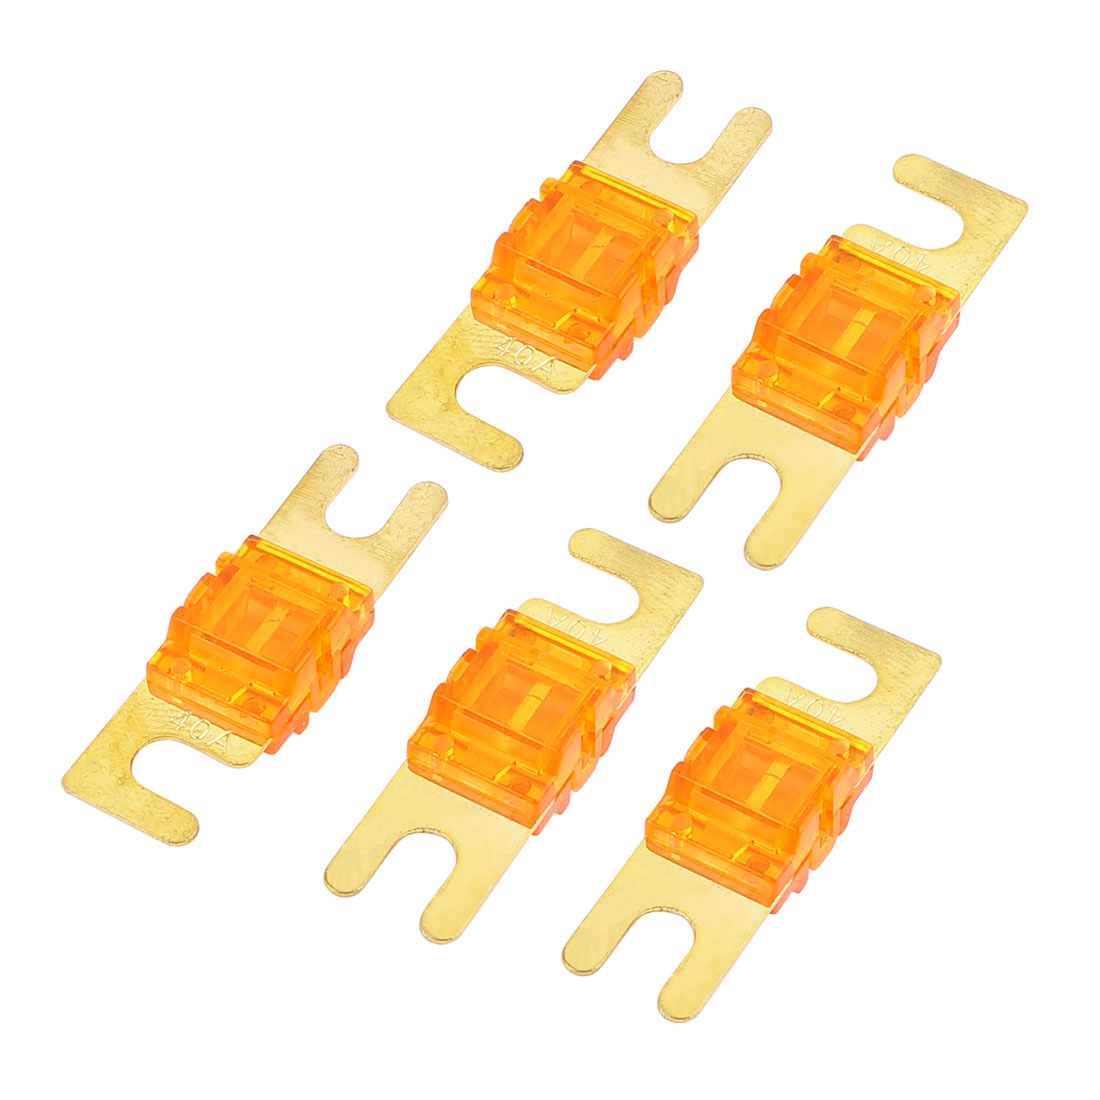 5 pcs Mini-ANL Fuses 40A Car Audio Power Wire Boat Auto Electronics Fuse Orange